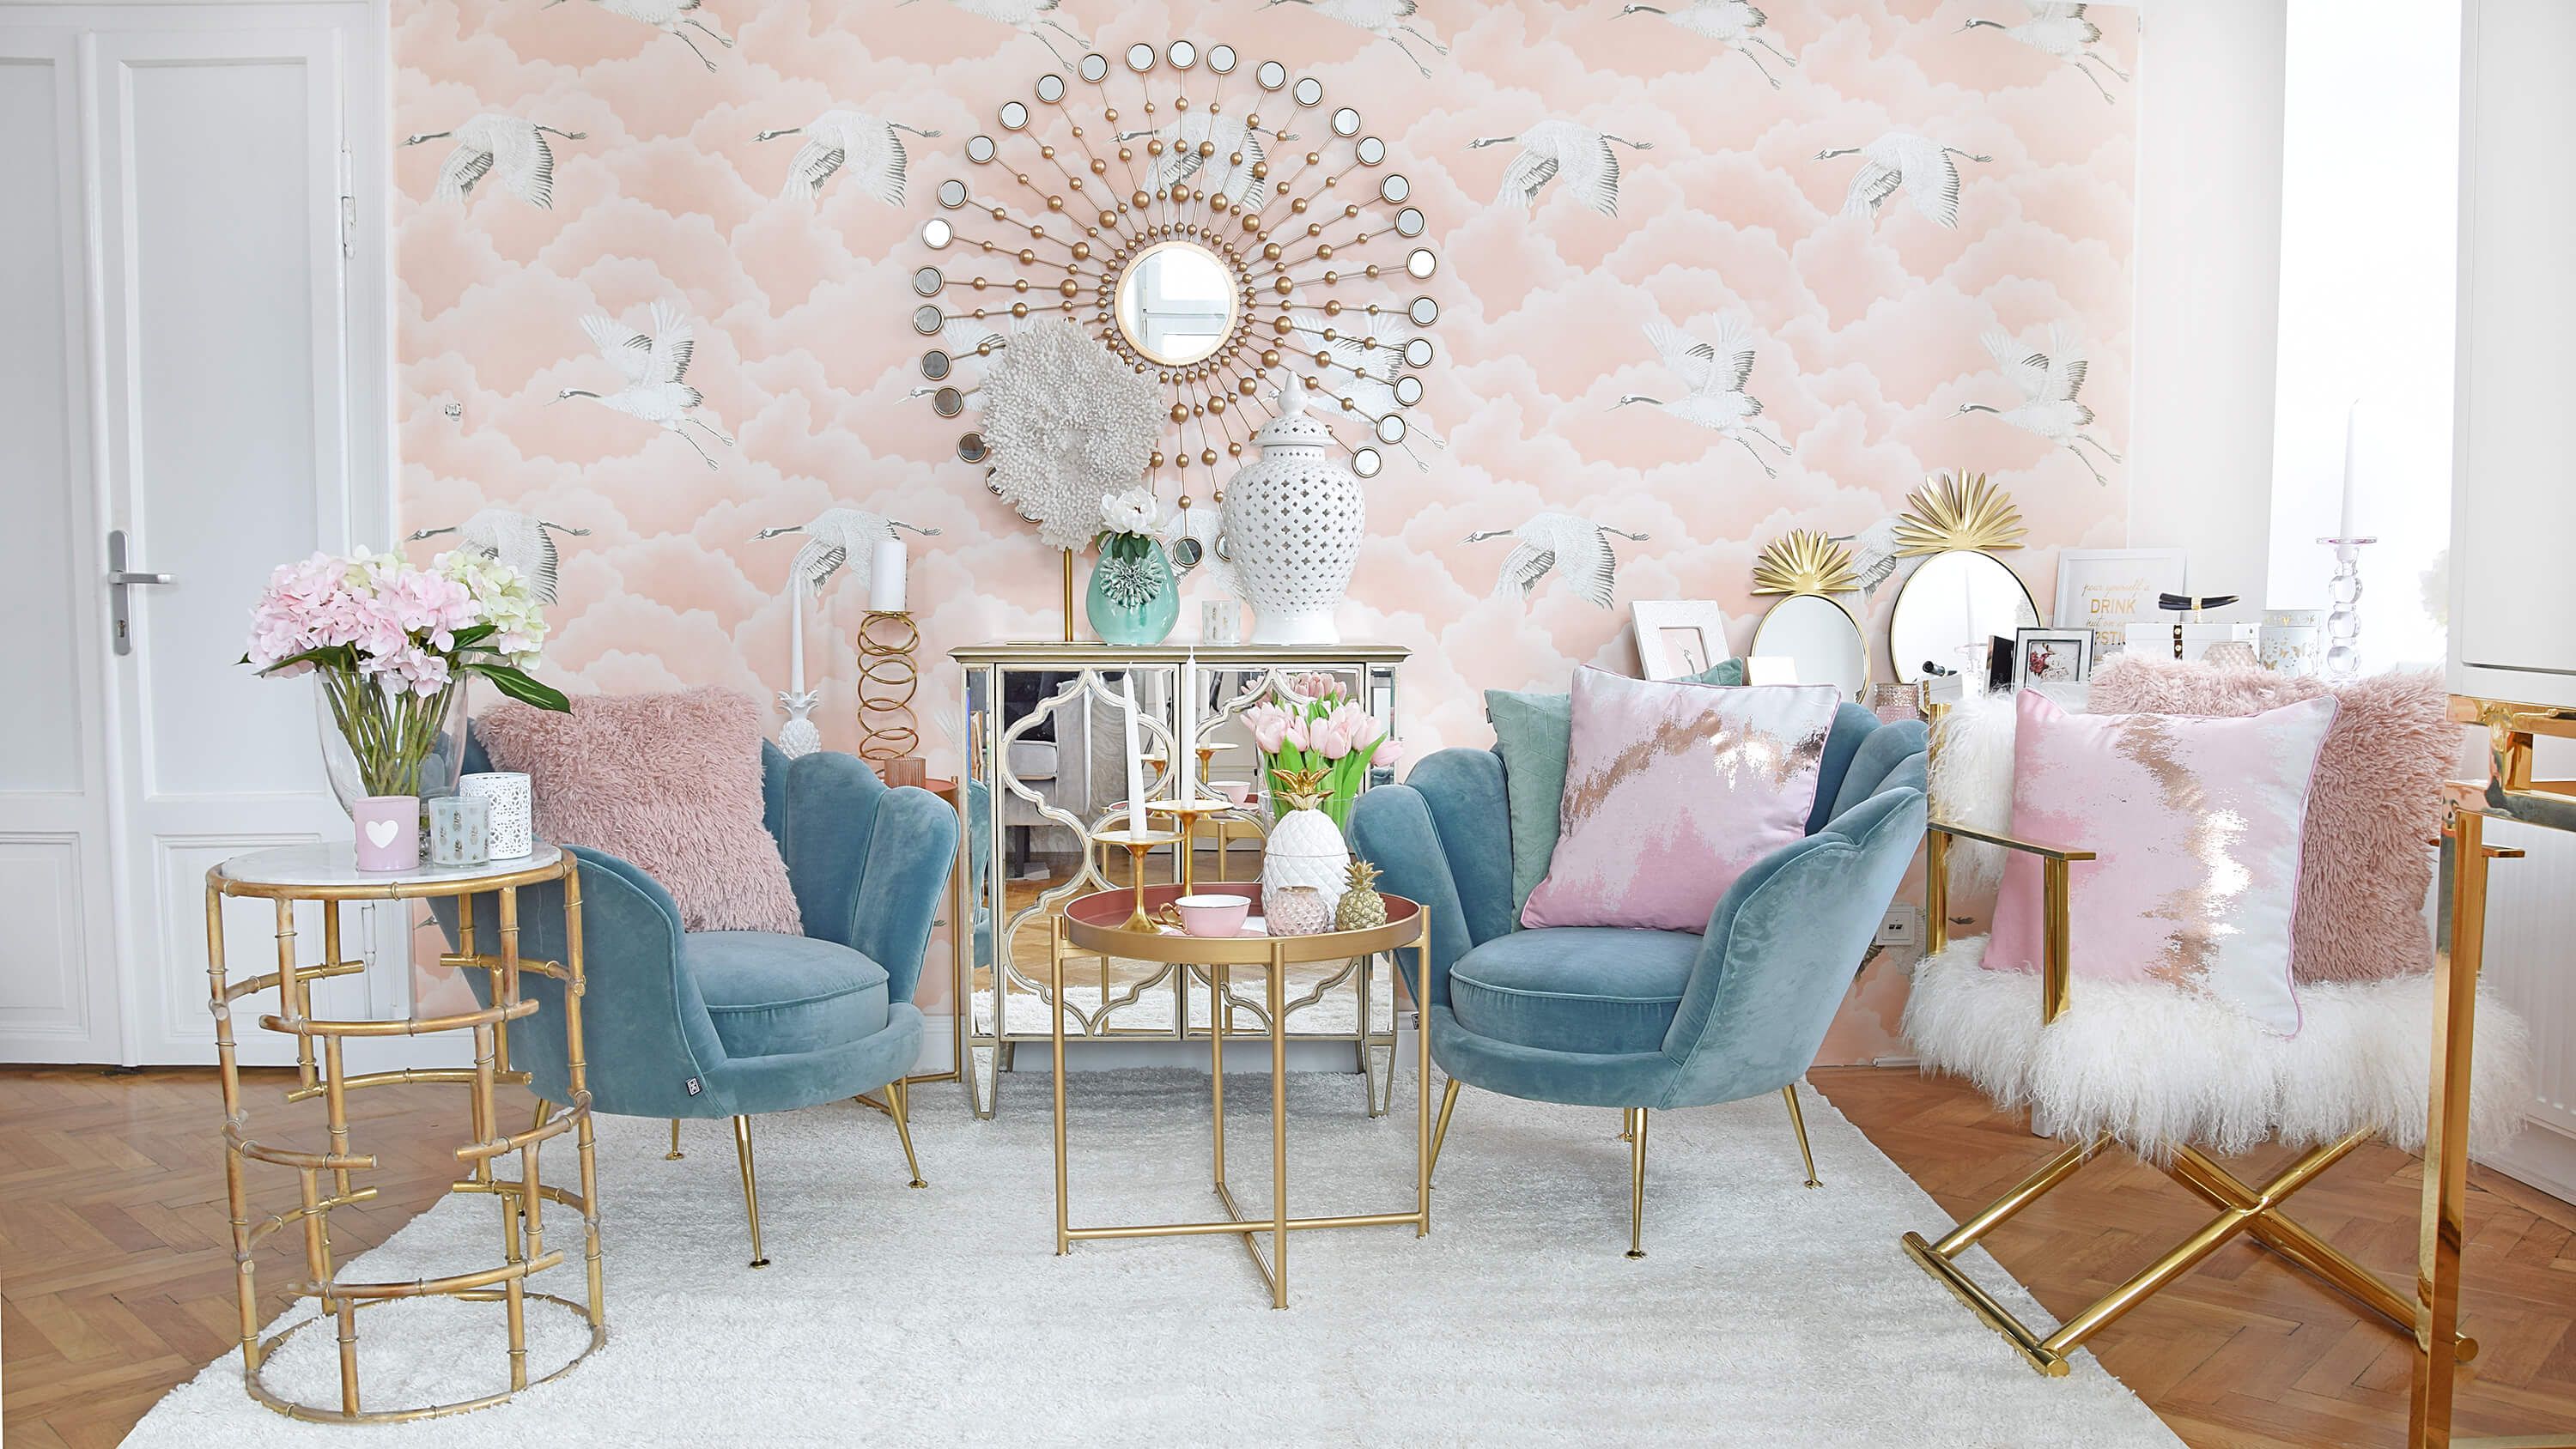 Mermaid Dreams - Wohnzimmer-Lounge in Rosa & Türkisblau